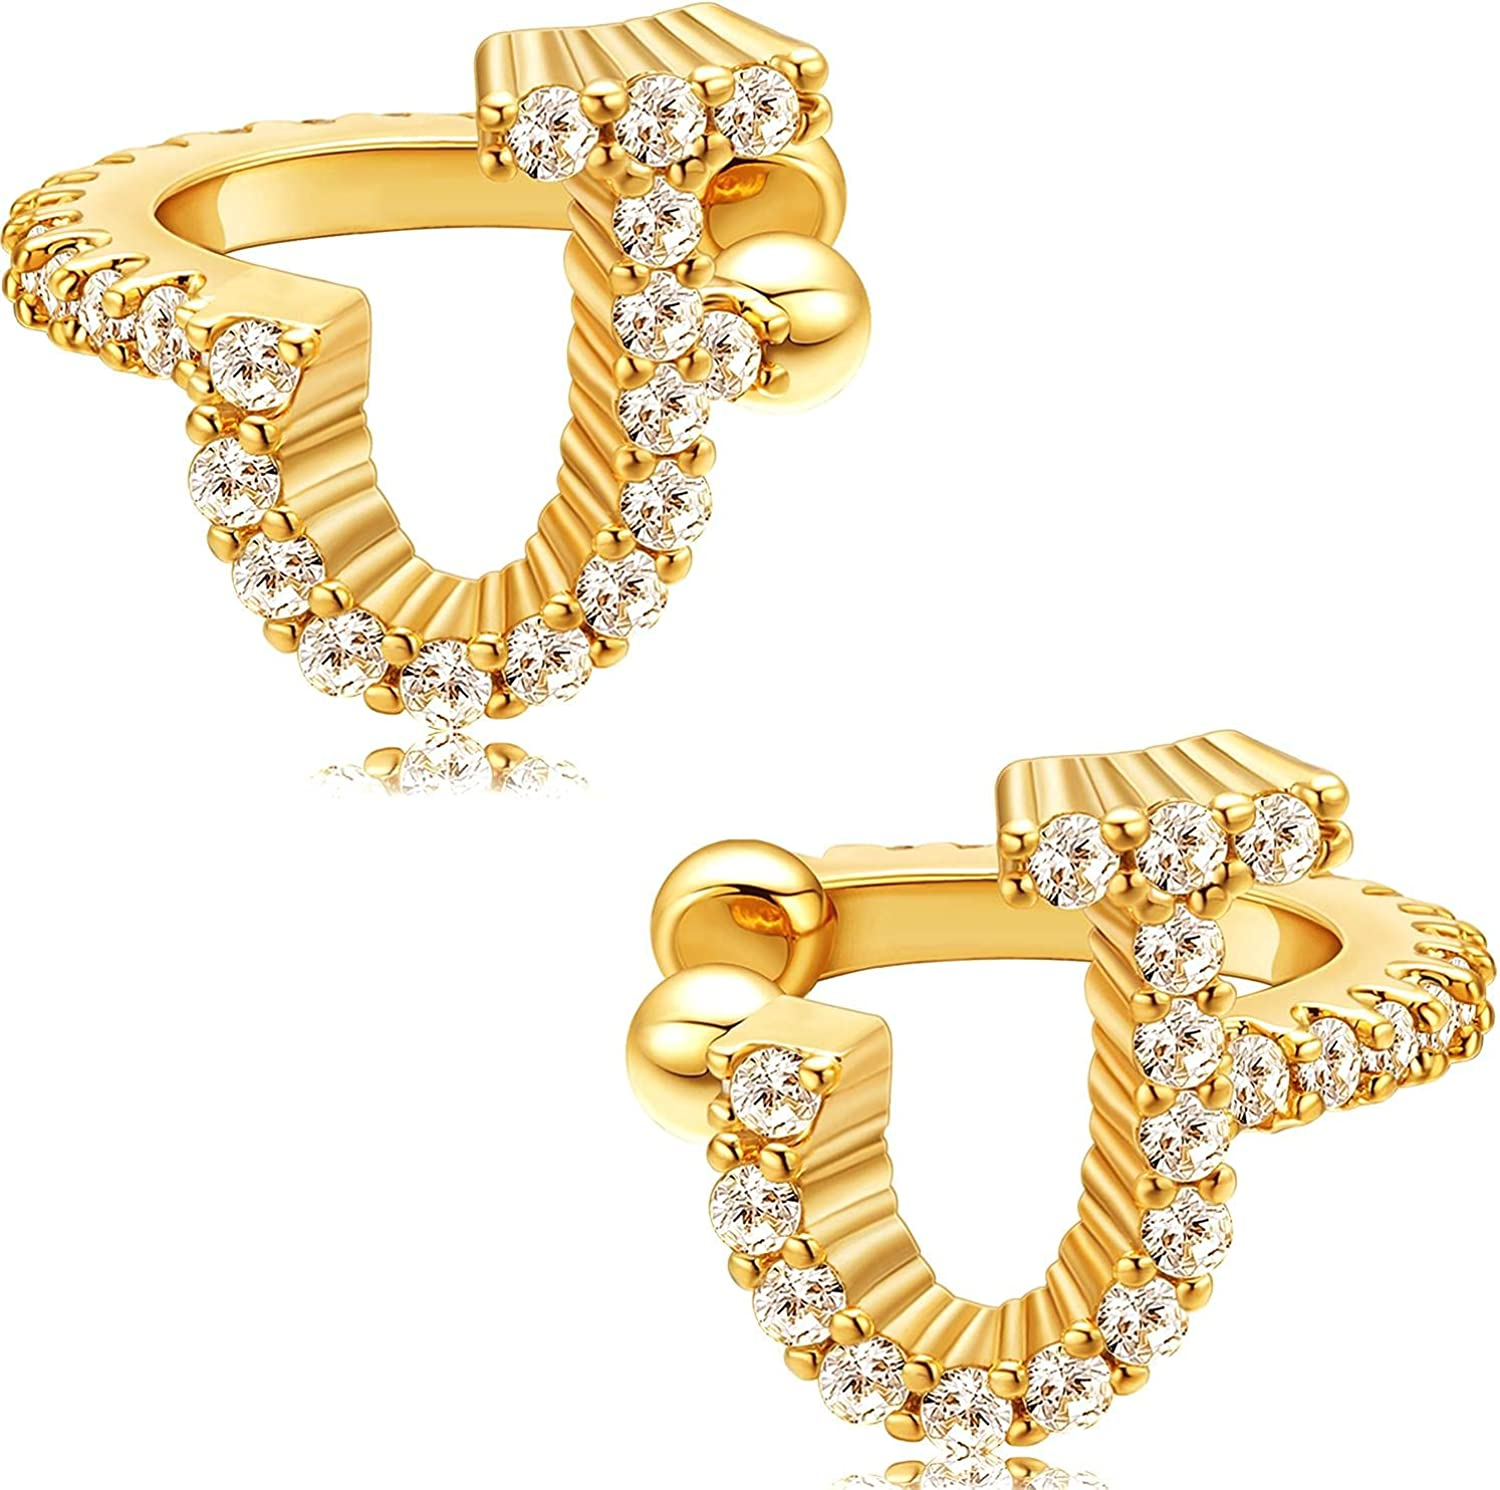 Tulsa Mall MBW Initial Ear Cuffs Earrings 18K Max 81% OFF Silver Plated Dainty Tin Gold